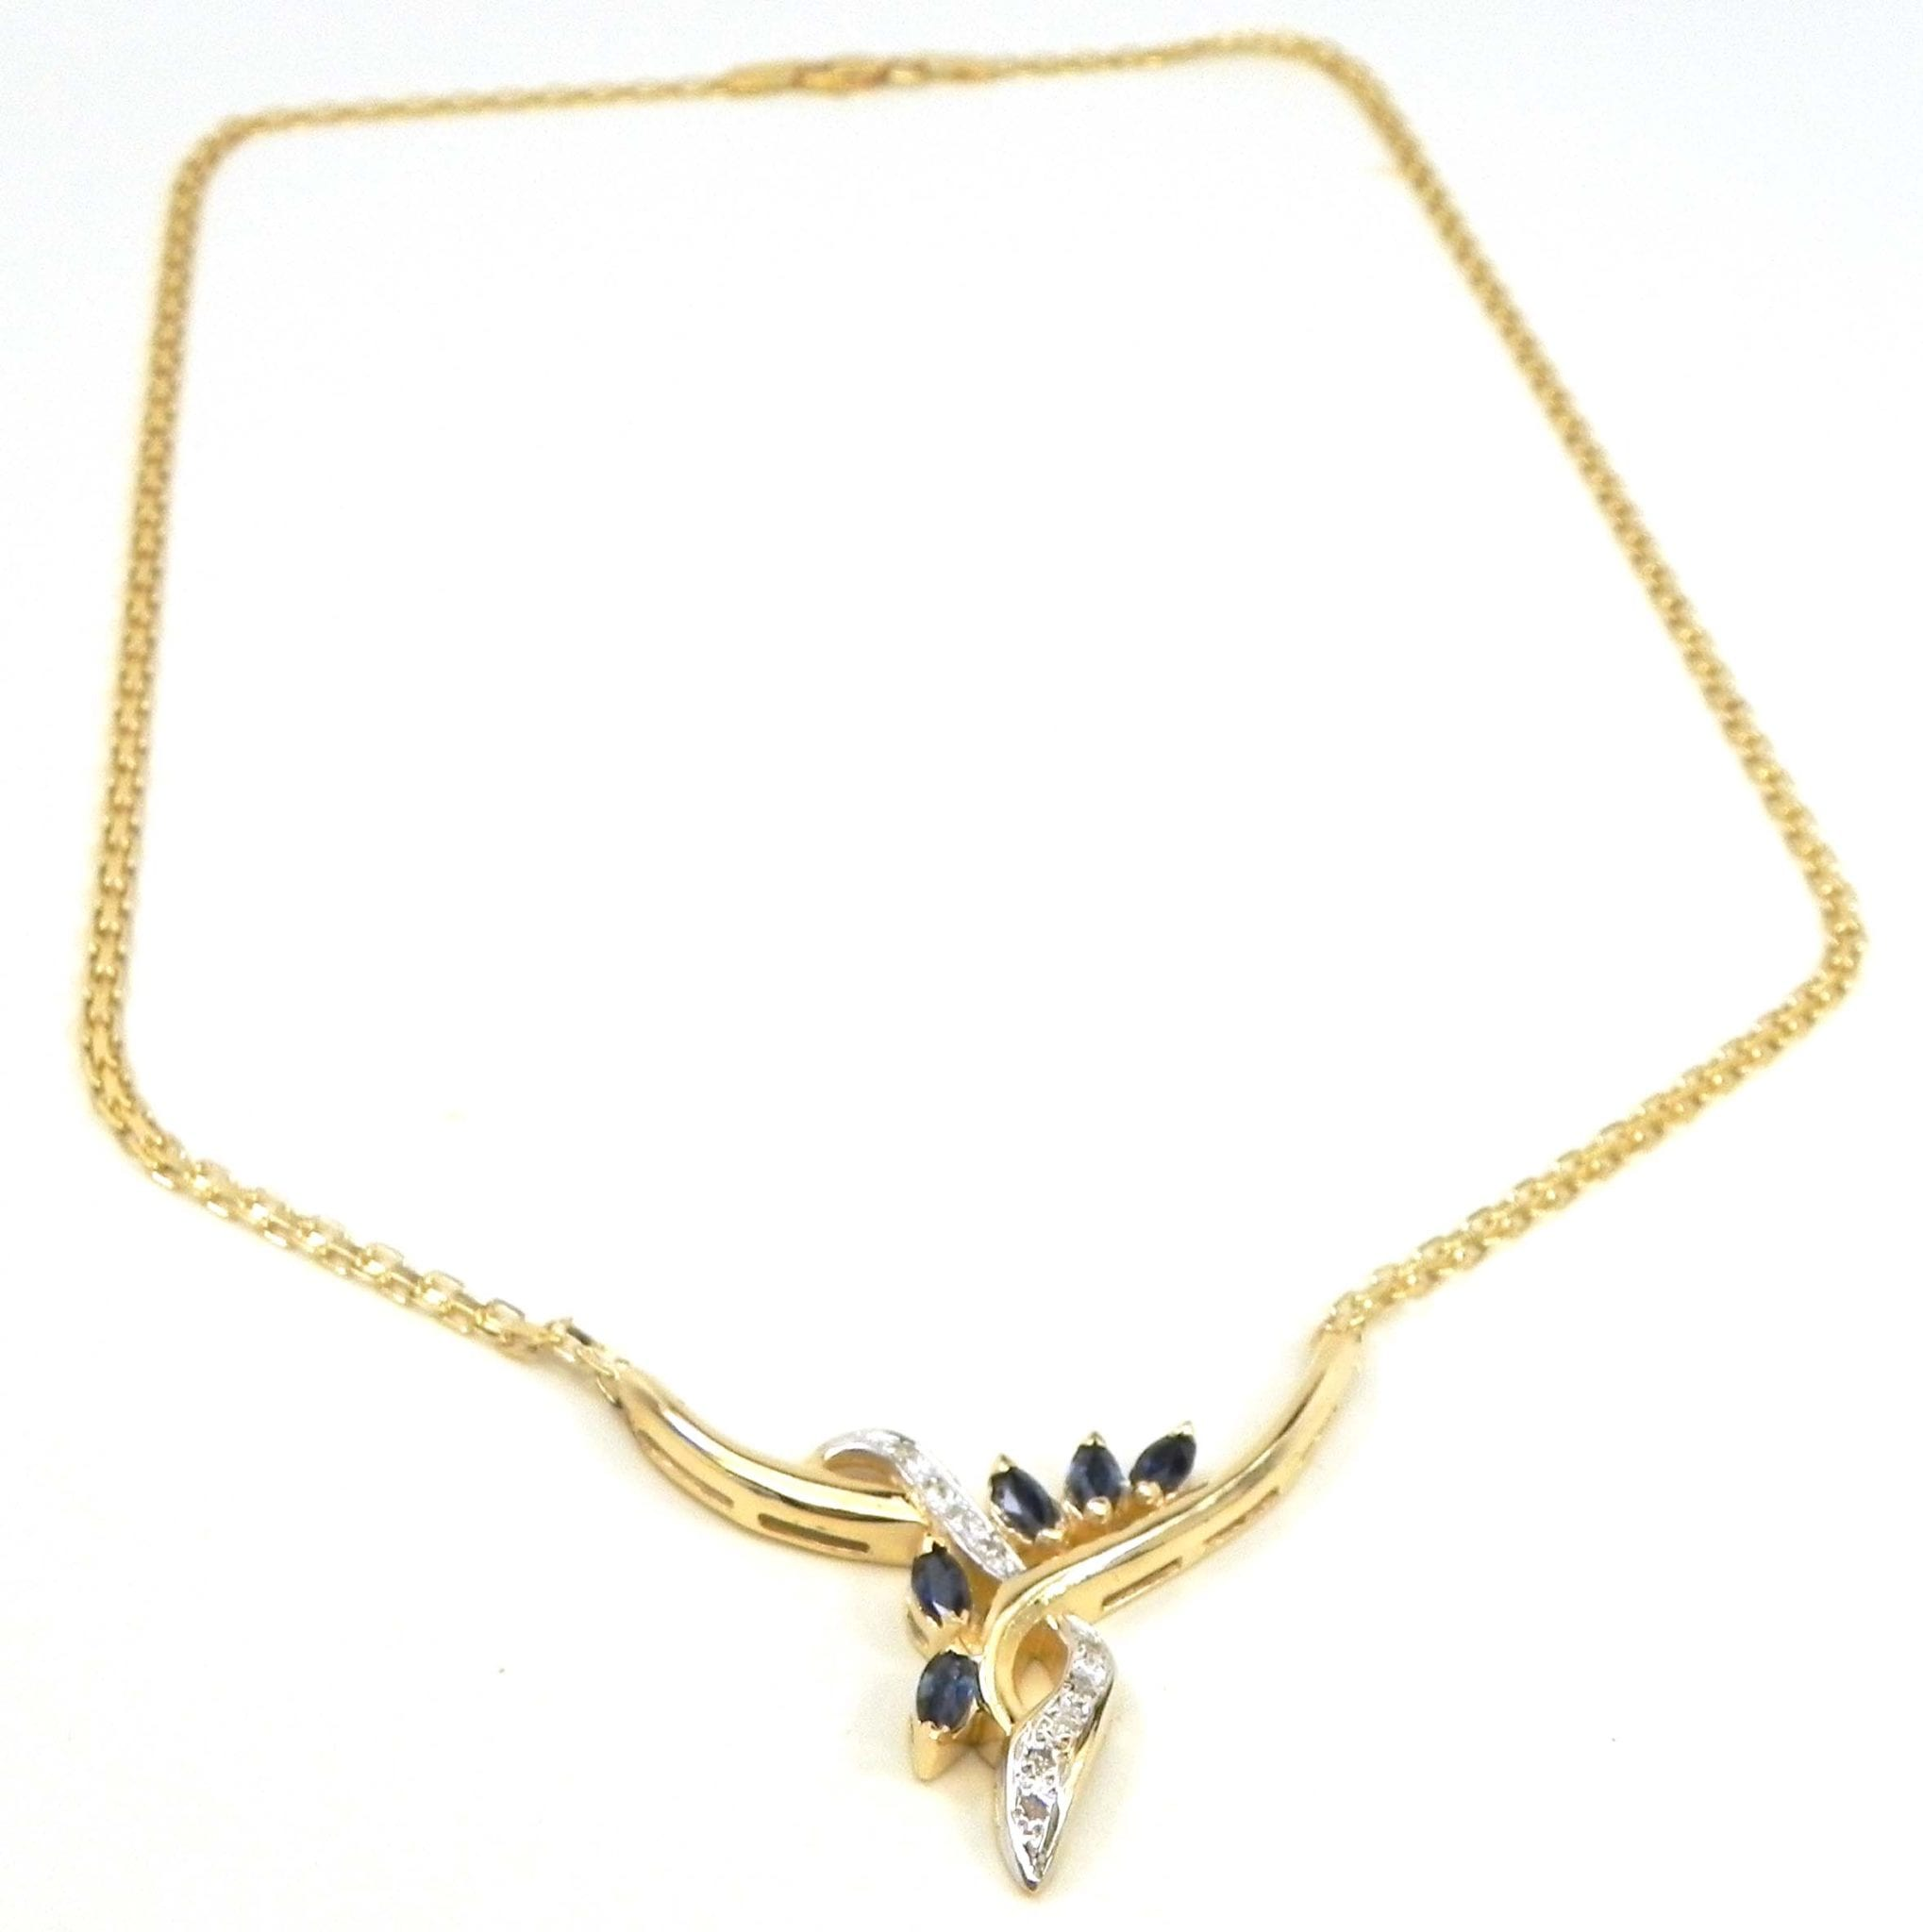 yellow sapphire necklace - photo #41